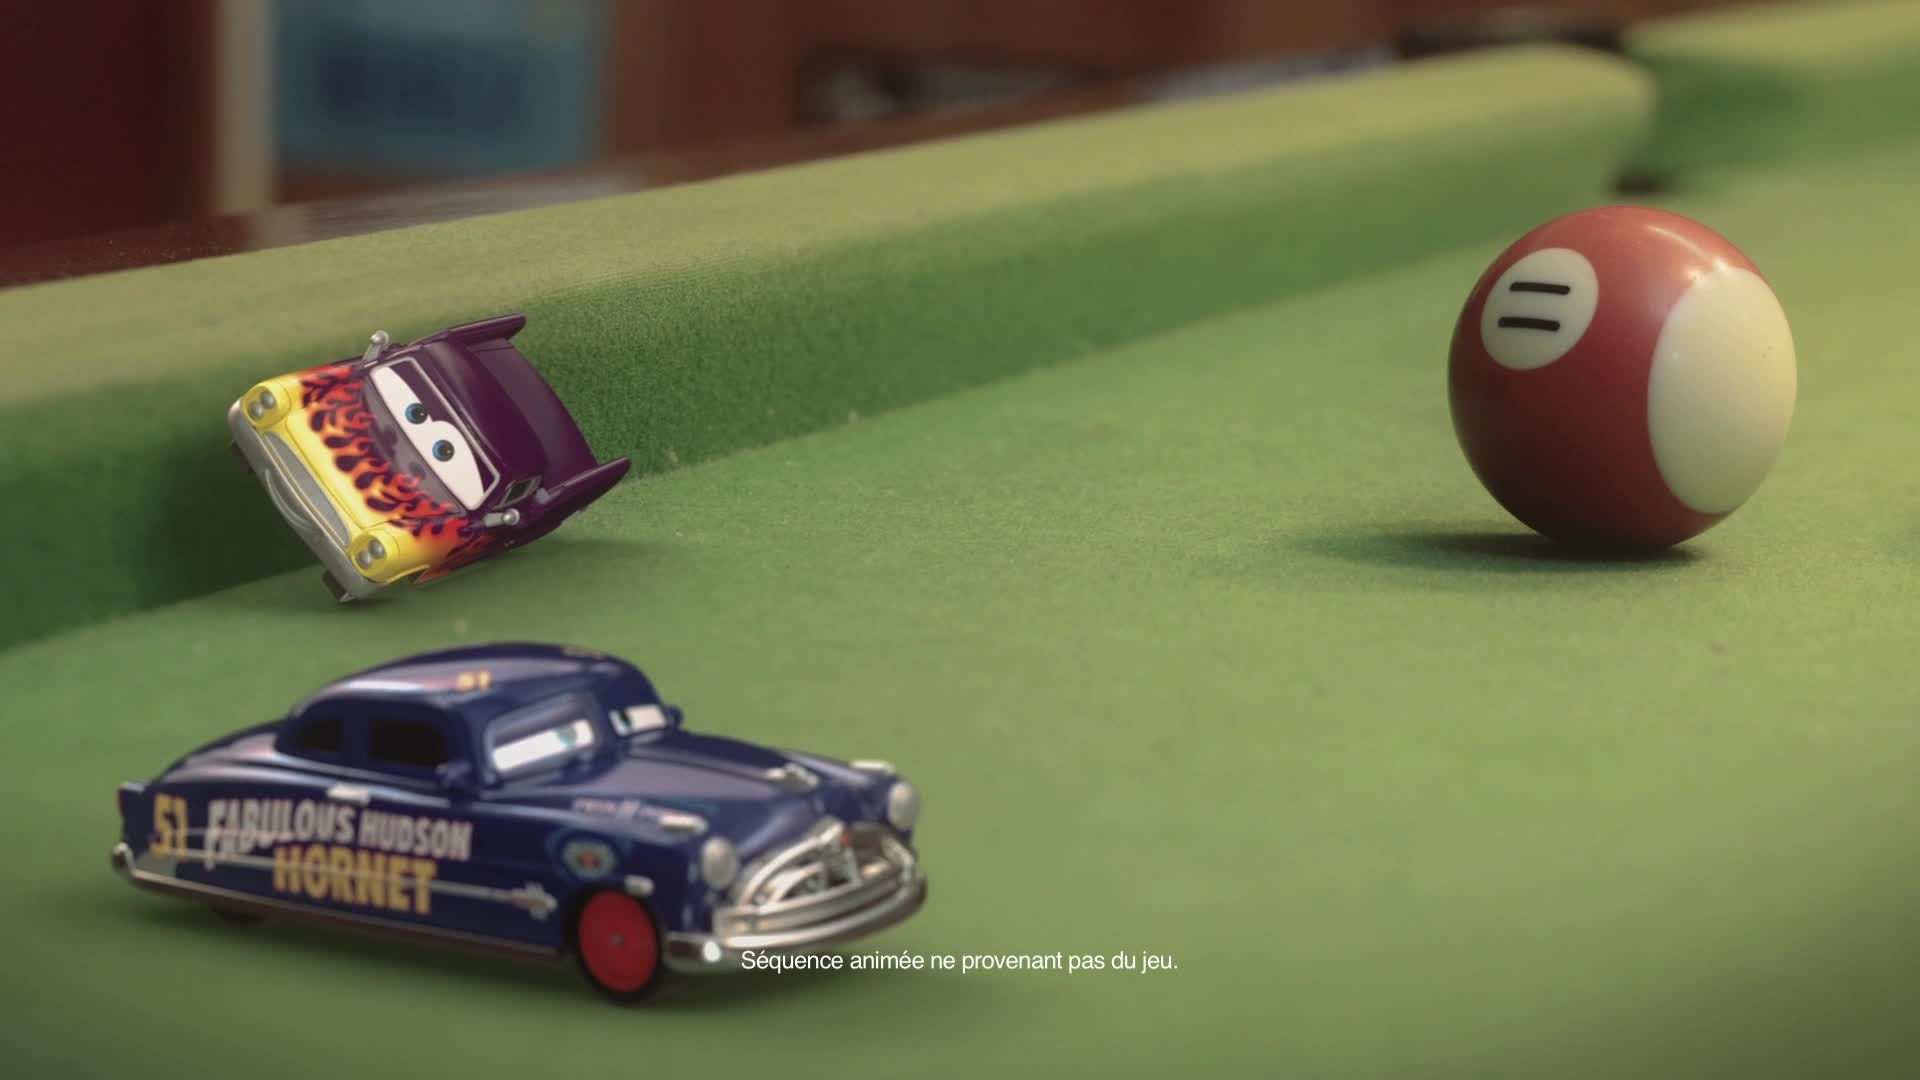 Cars Daredevil Garage - Envahit... La table de billard !